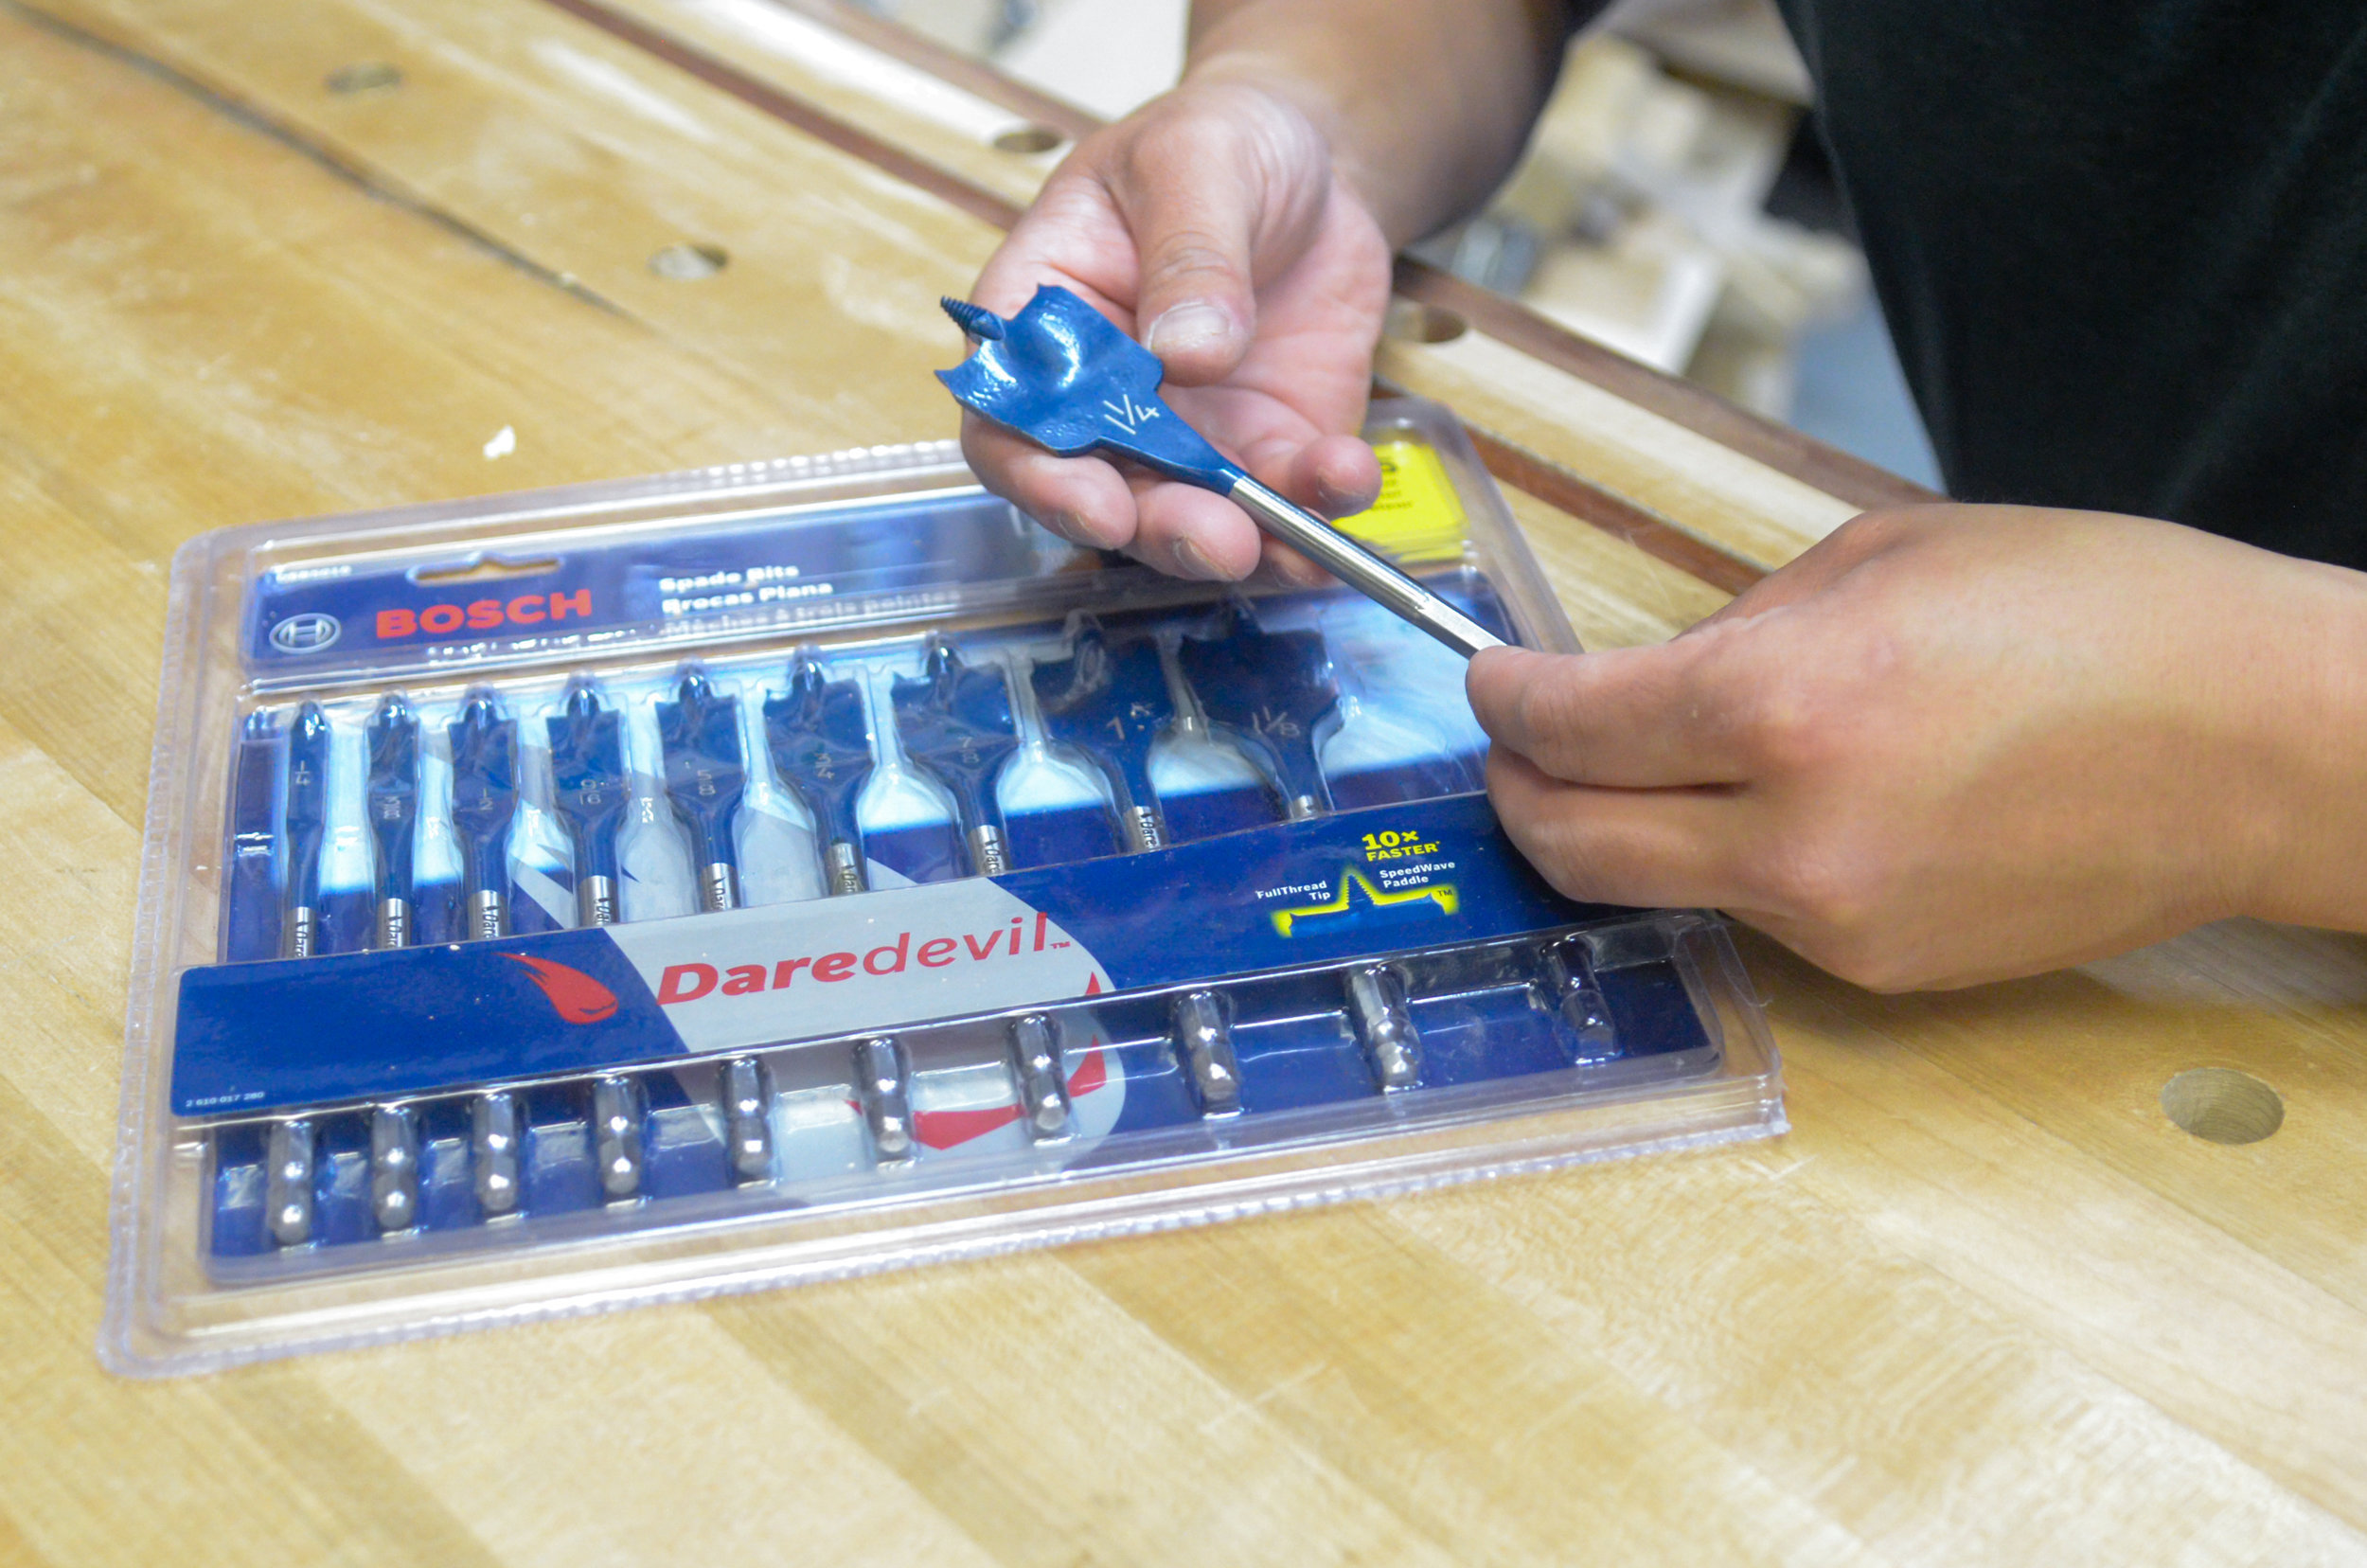 """The Bosch Davedevil Standard Spade Bit Set (10-Piece) comes with bits sized 1/4"""" to 1-1/4"""" in 1/8"""" increments."""